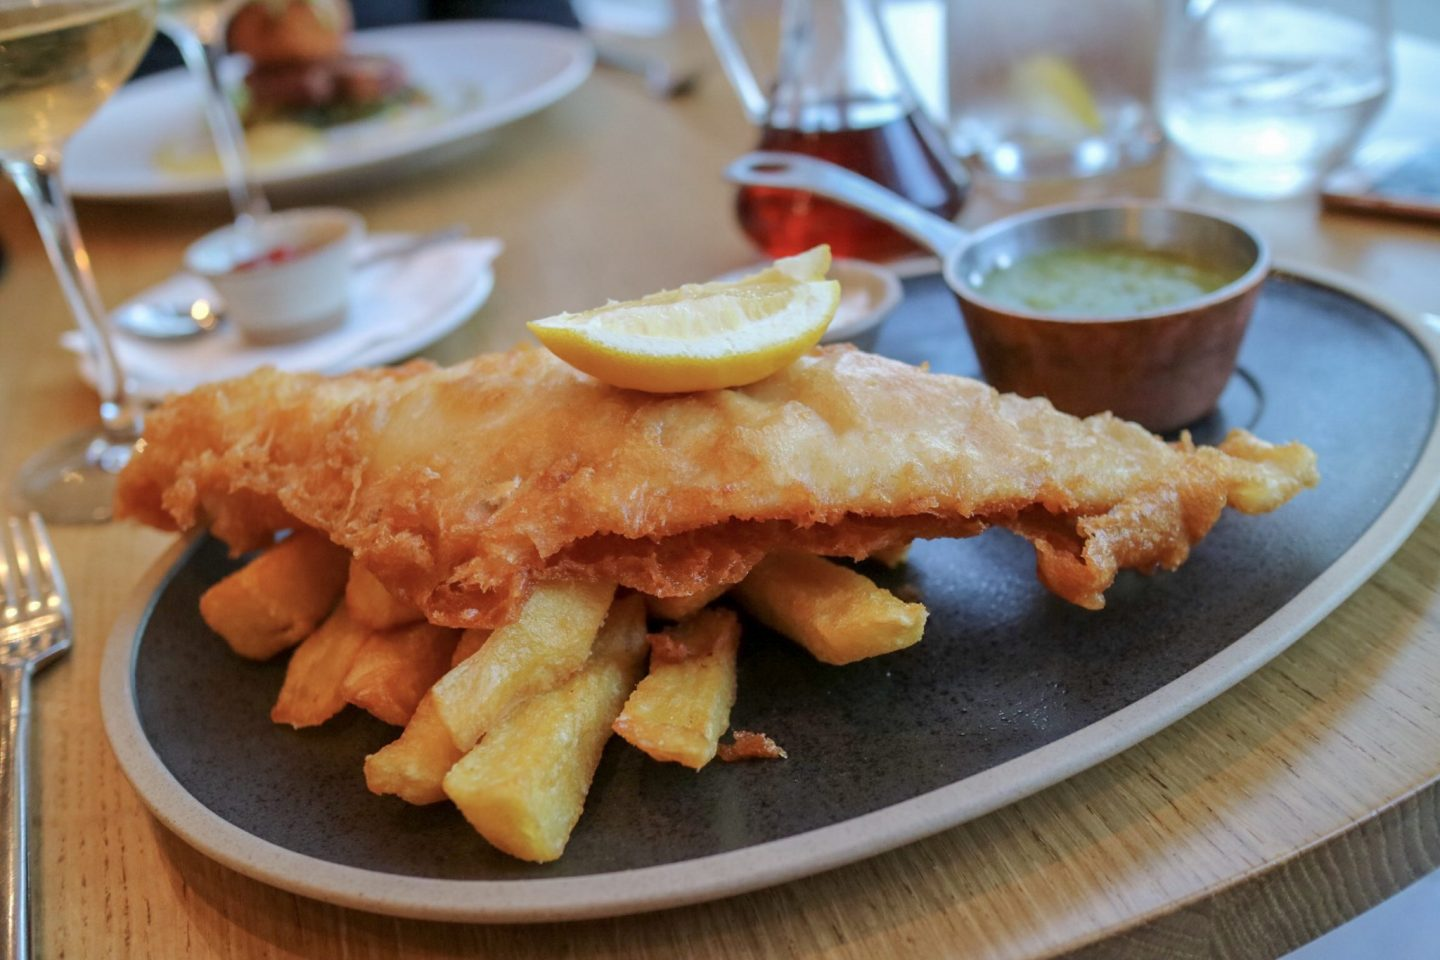 Fish and chips at The Devonshire Arms & Spa